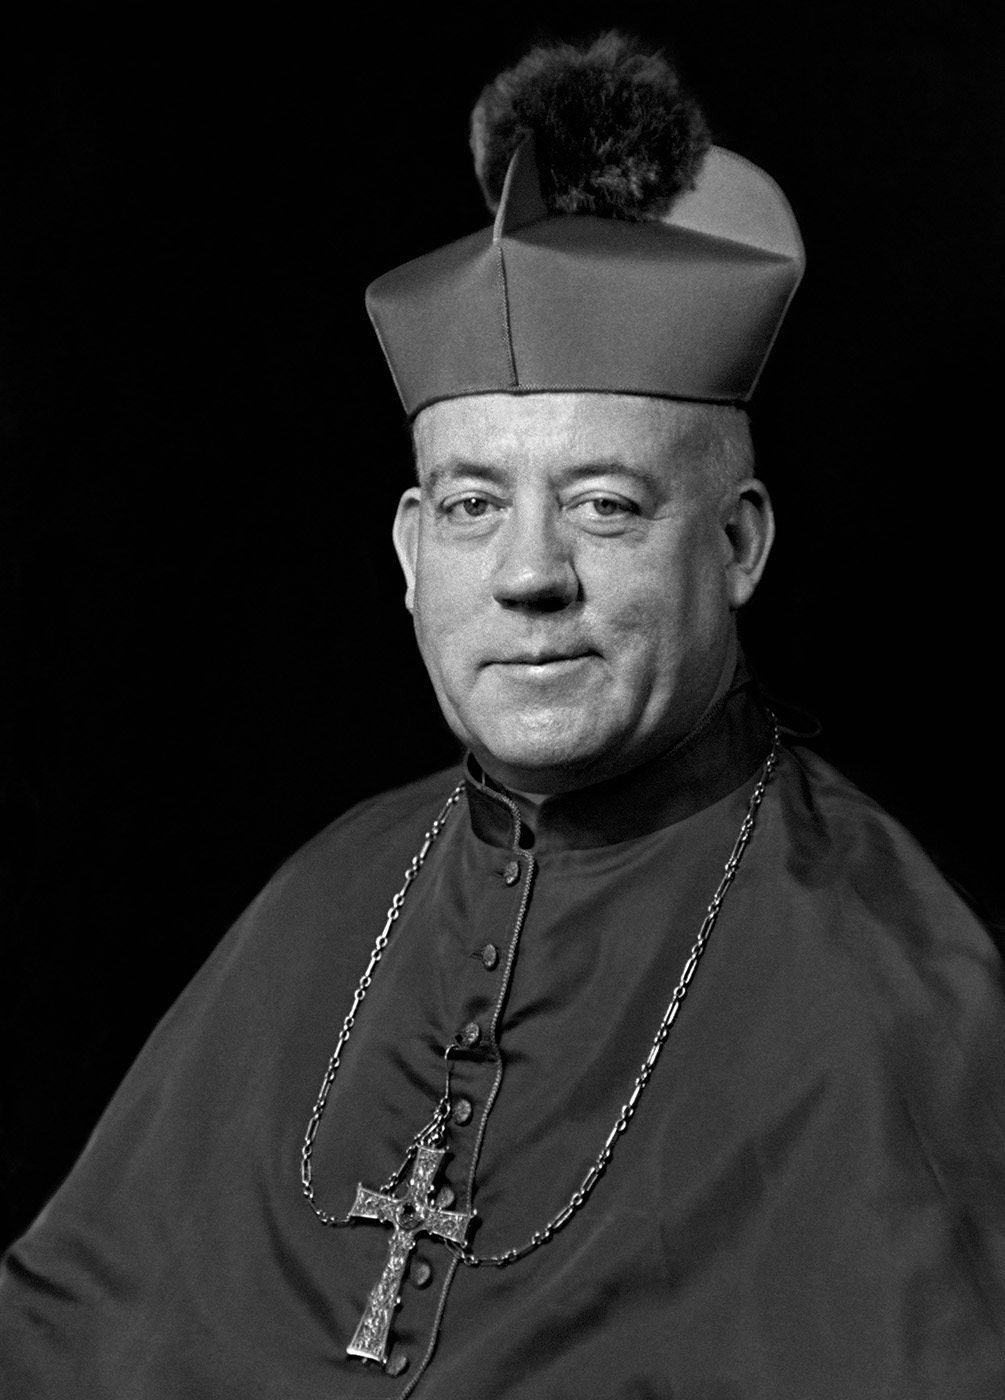 Archbishop Thomas E. Molloy, Bishop of Brooklyn, 1947